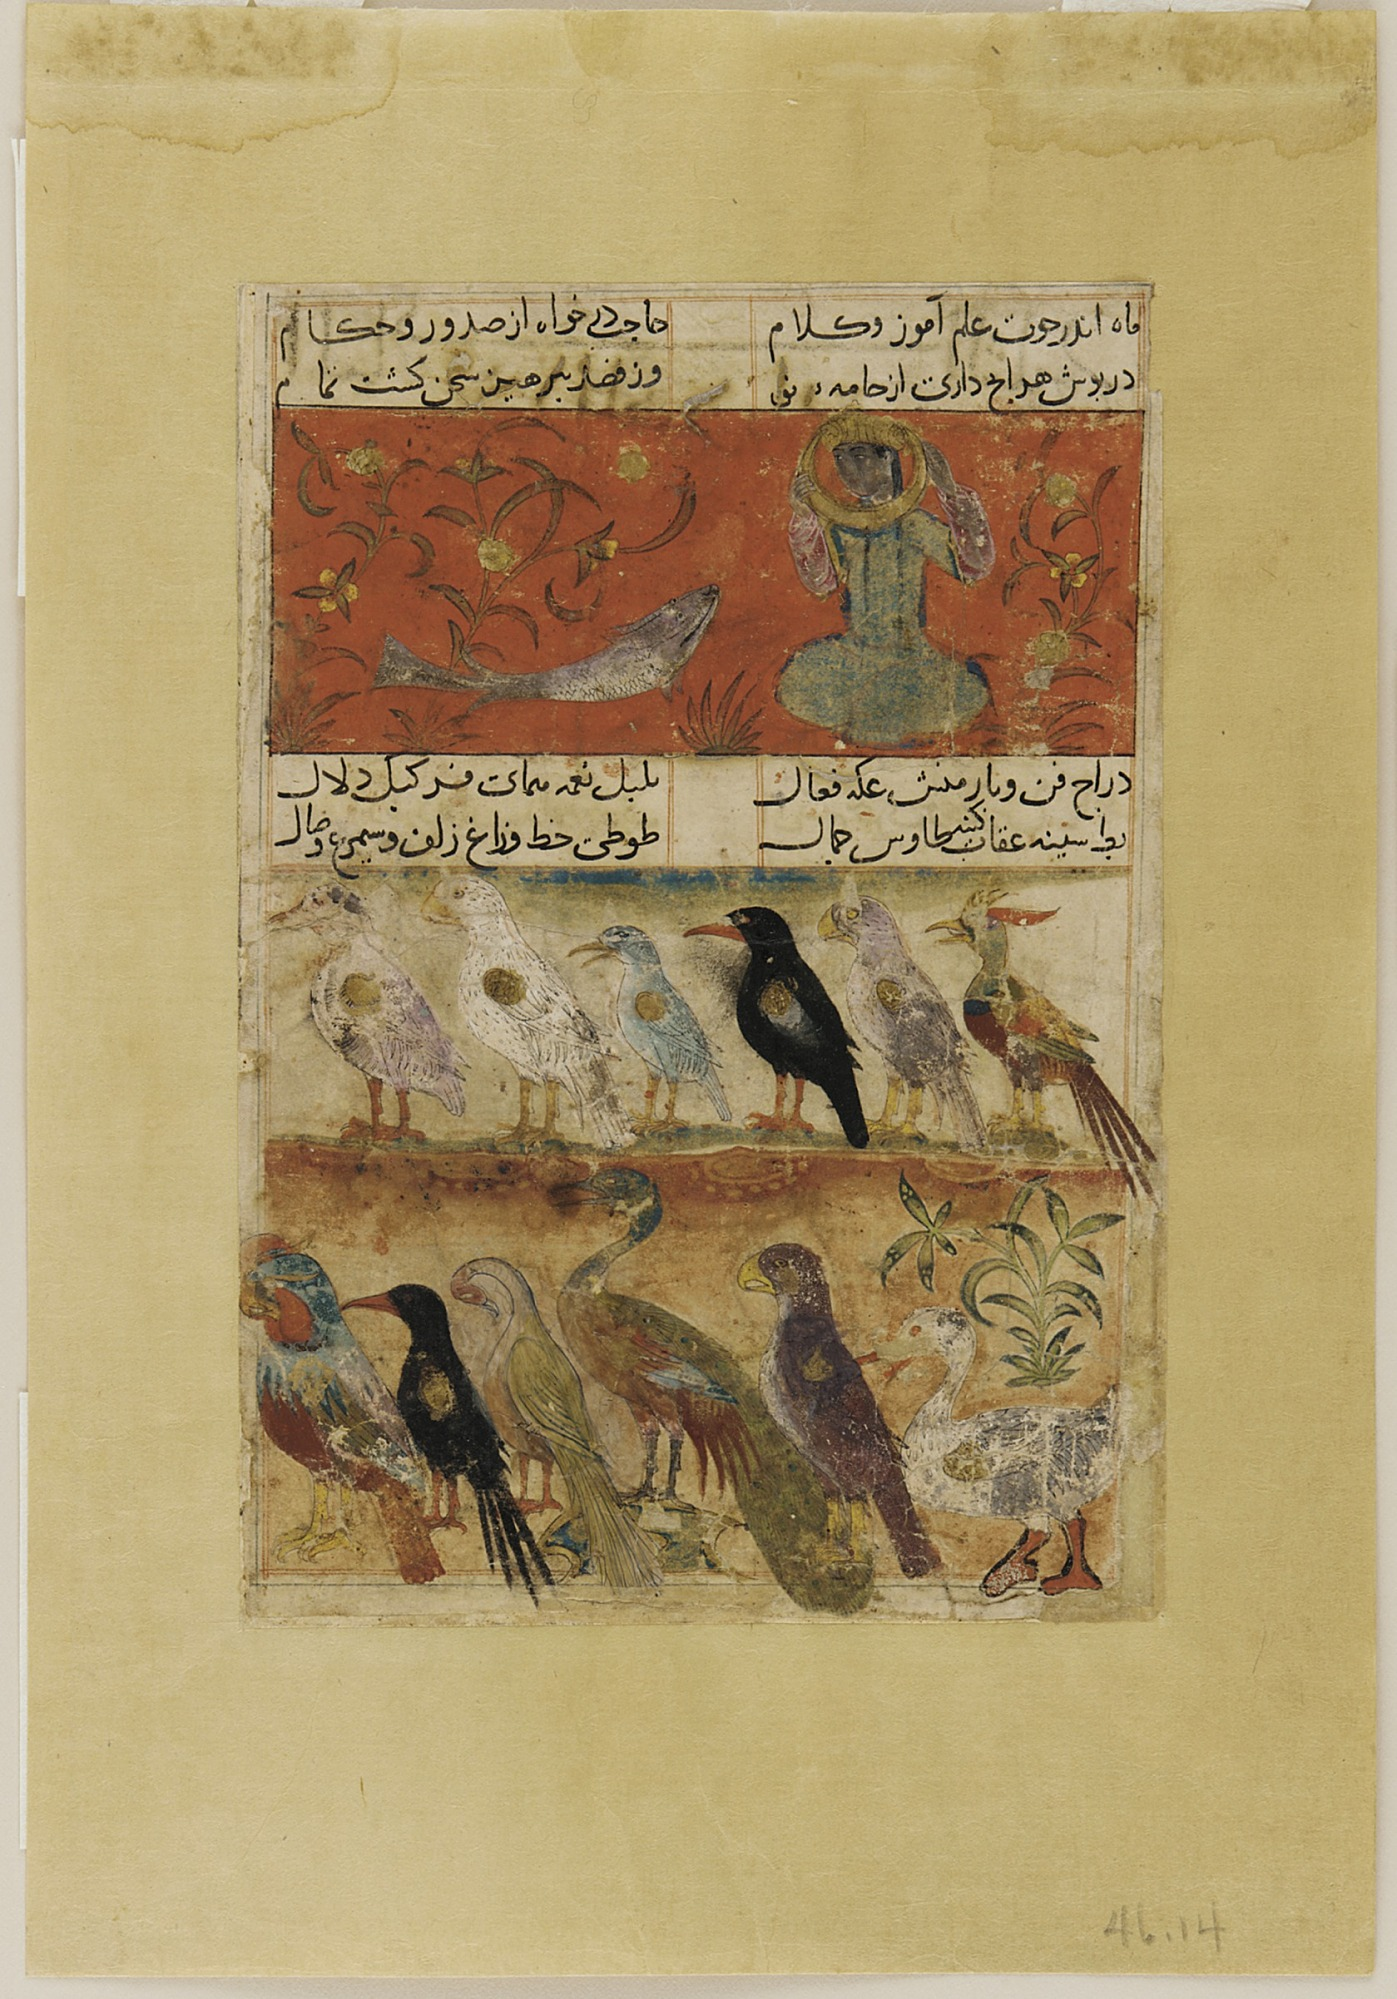 verso: Folio from a Mu'nis al-abrar fi daqa'iq al-ash'ar (Free Man's Guide to the Subtleties of Poetry) by Badr al-Din Jajarmi (d. 1287); The Zodiac constellation of Pisces, the moon, and two registers of birds; reverse: text: verses of poem